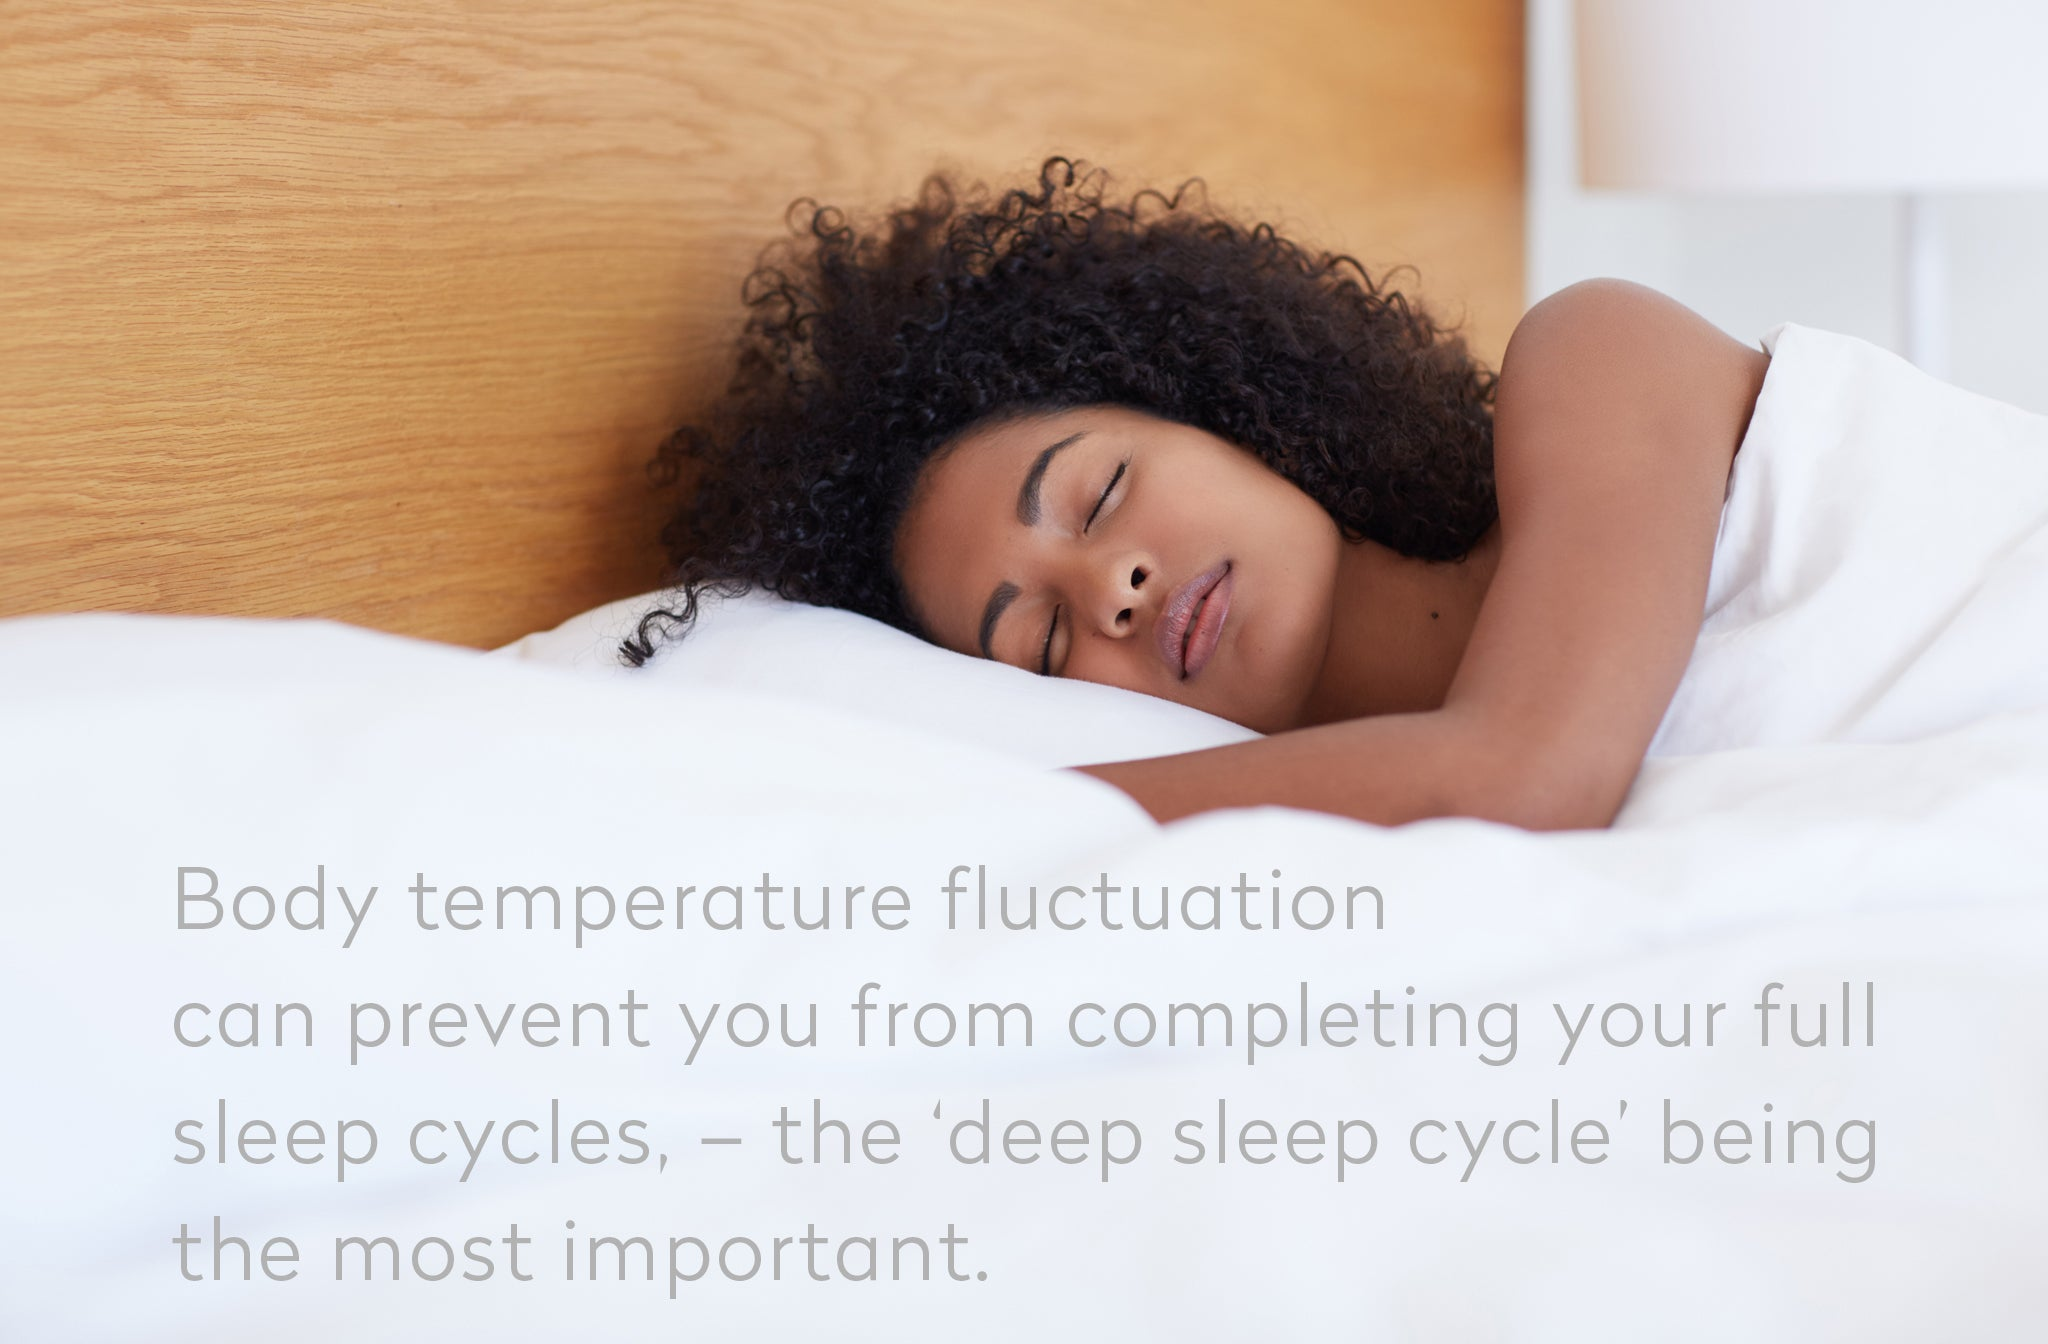 image of woman sleeping with quote - body temperature fluctuation can prevent you from completing full sleep cycles